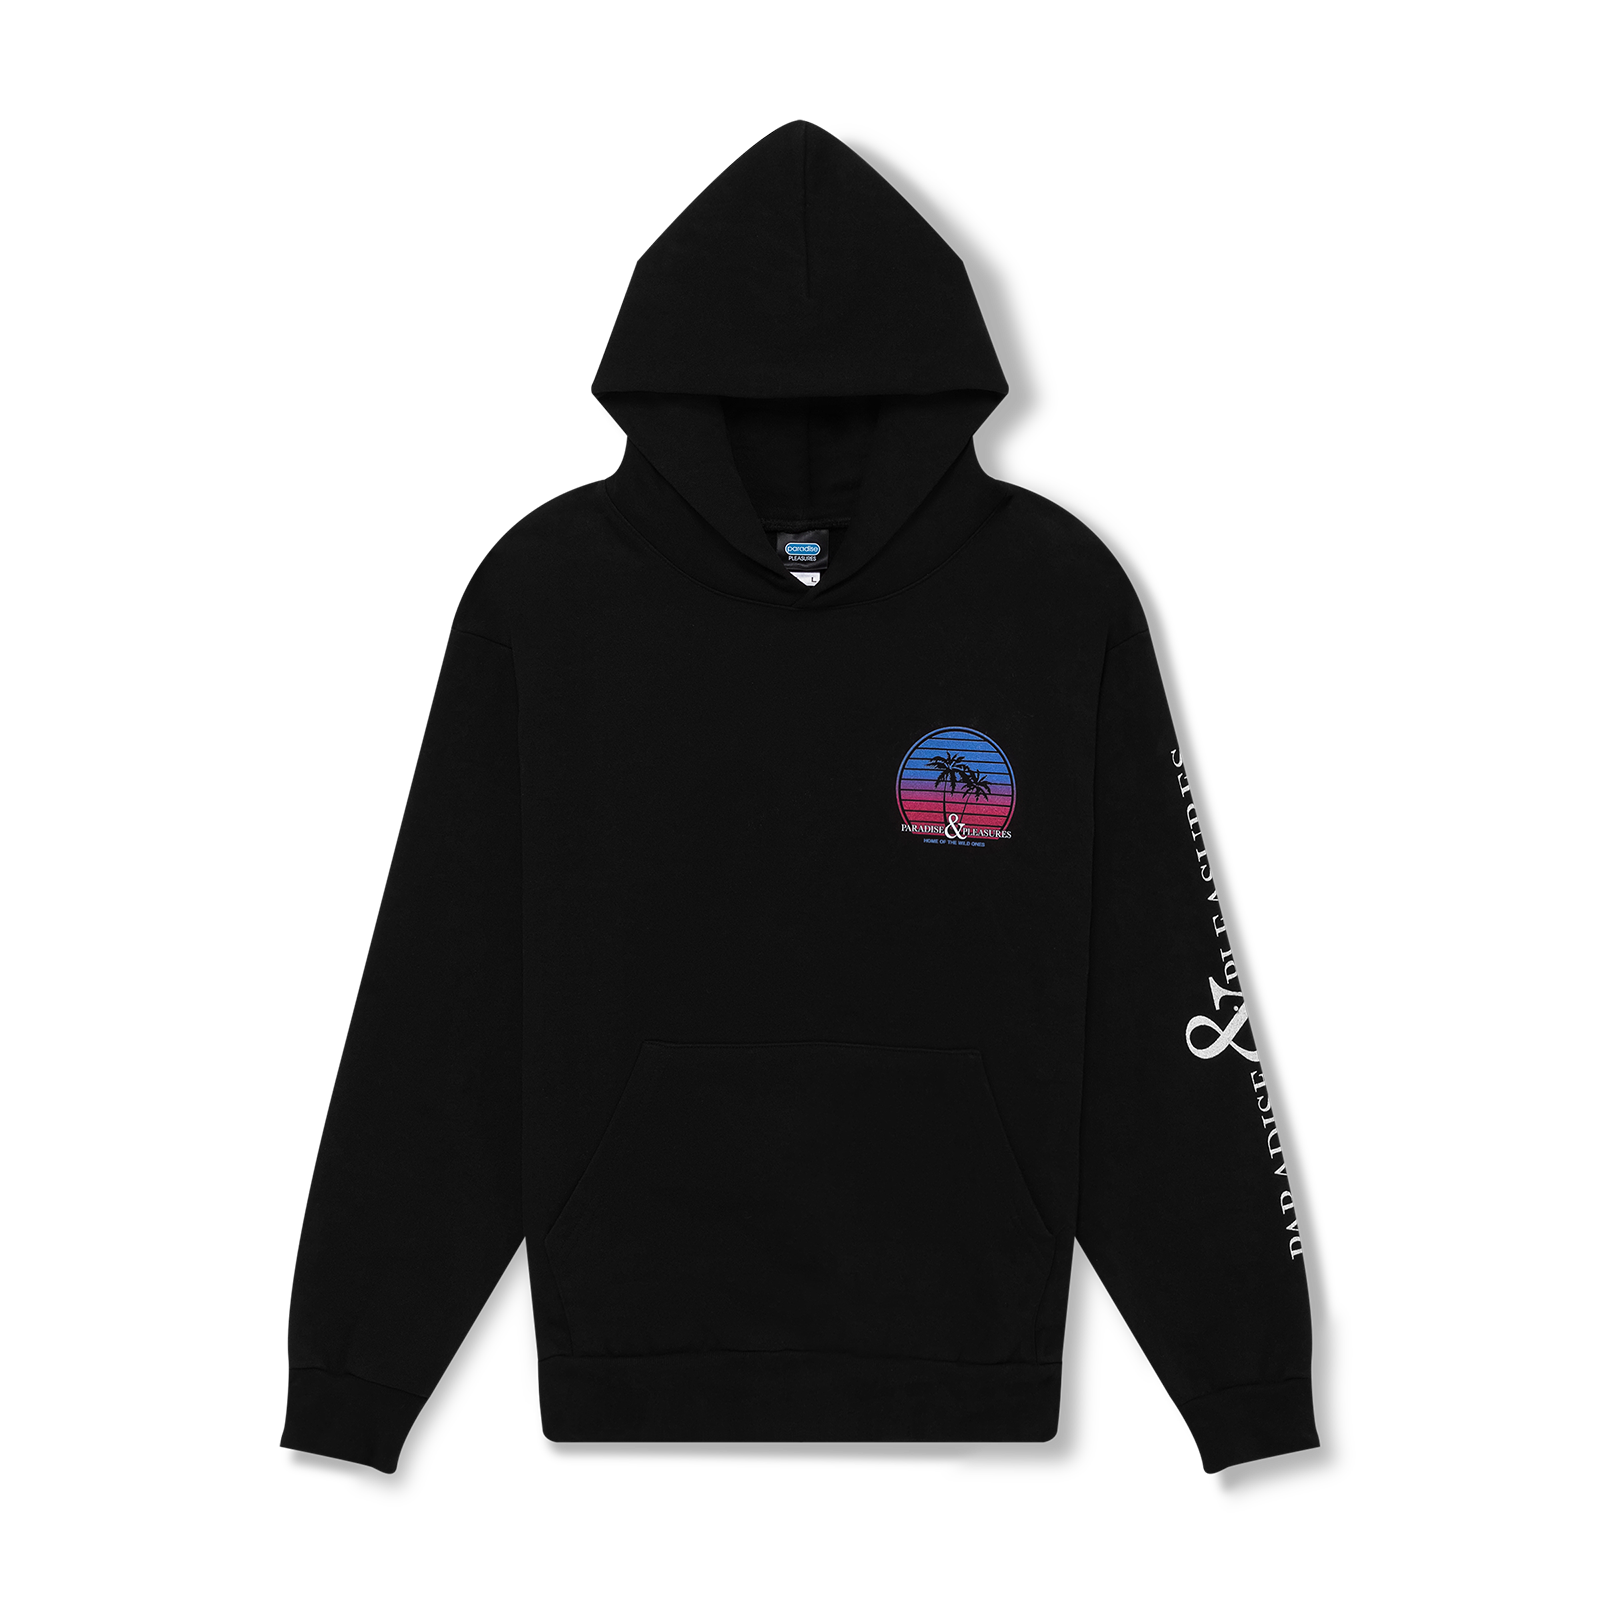 Flat lay hoodie product photo